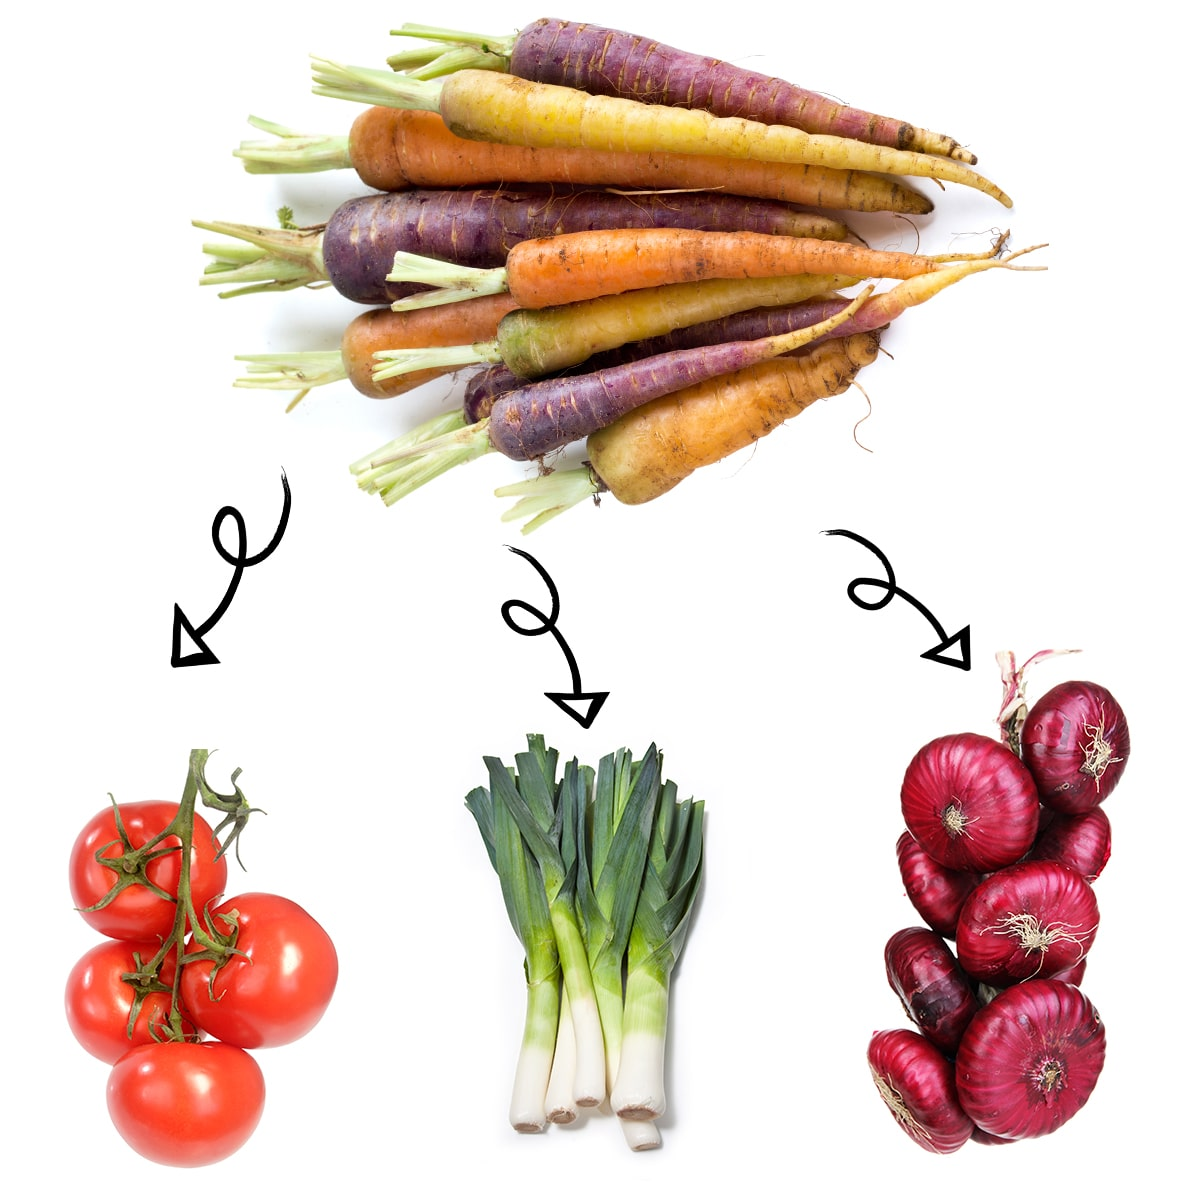 Bright white graphic of a bundle of carrots with arrows linking it to a fresh ripe tomatoes on the vine, stalks of leeks, and a bundle of red onions.